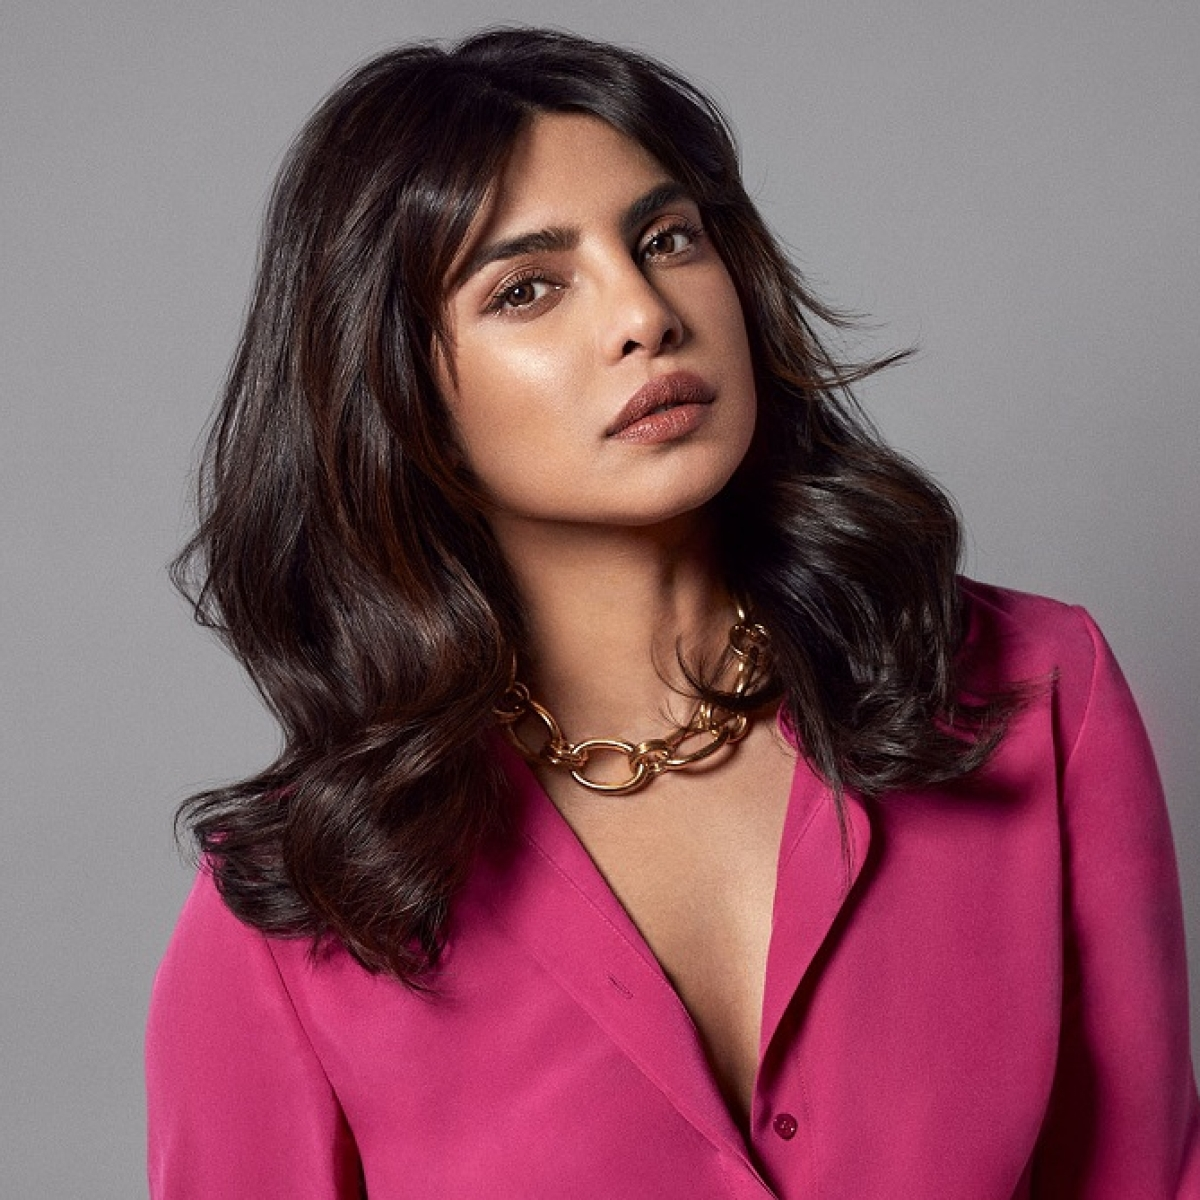 My body has changed as I've gotten older: Priyanka Chopra Jonas